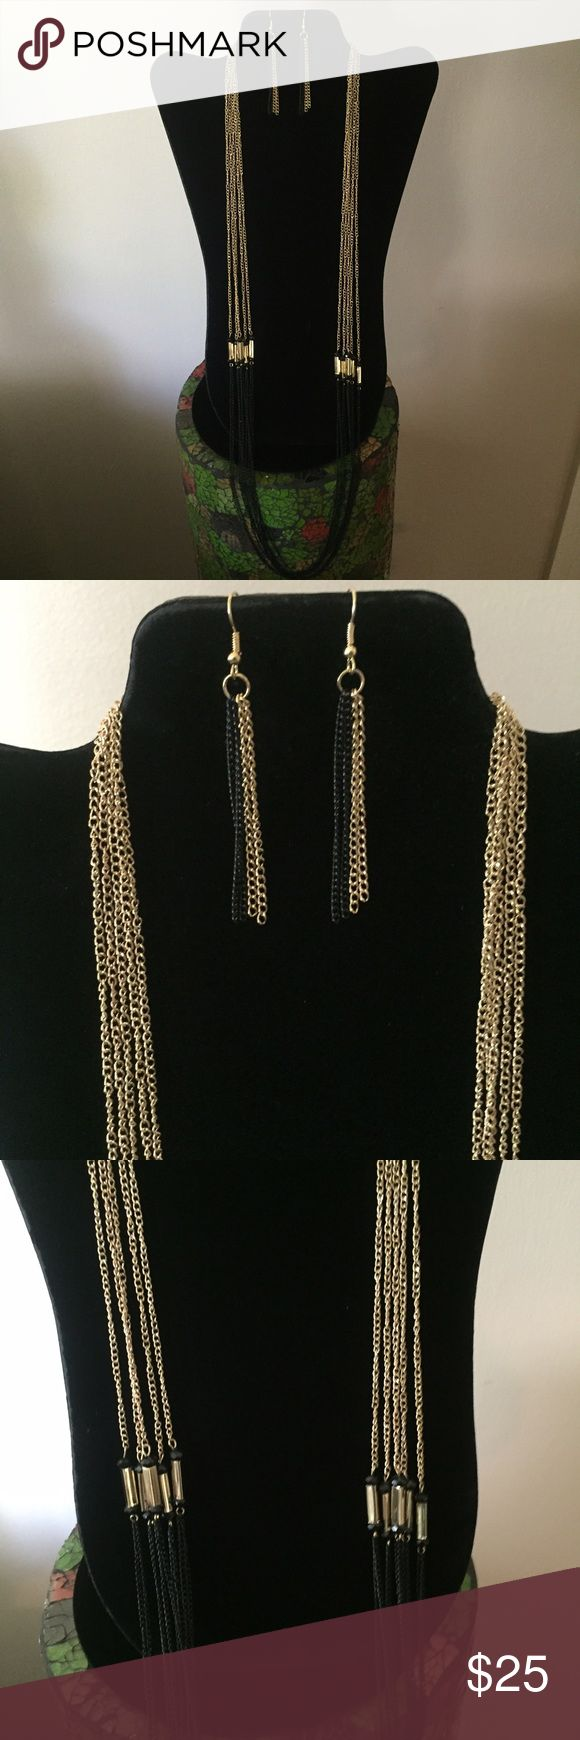 Black And Gold Set Multi Strand Black And Gold Necklace And Earring Set  Long